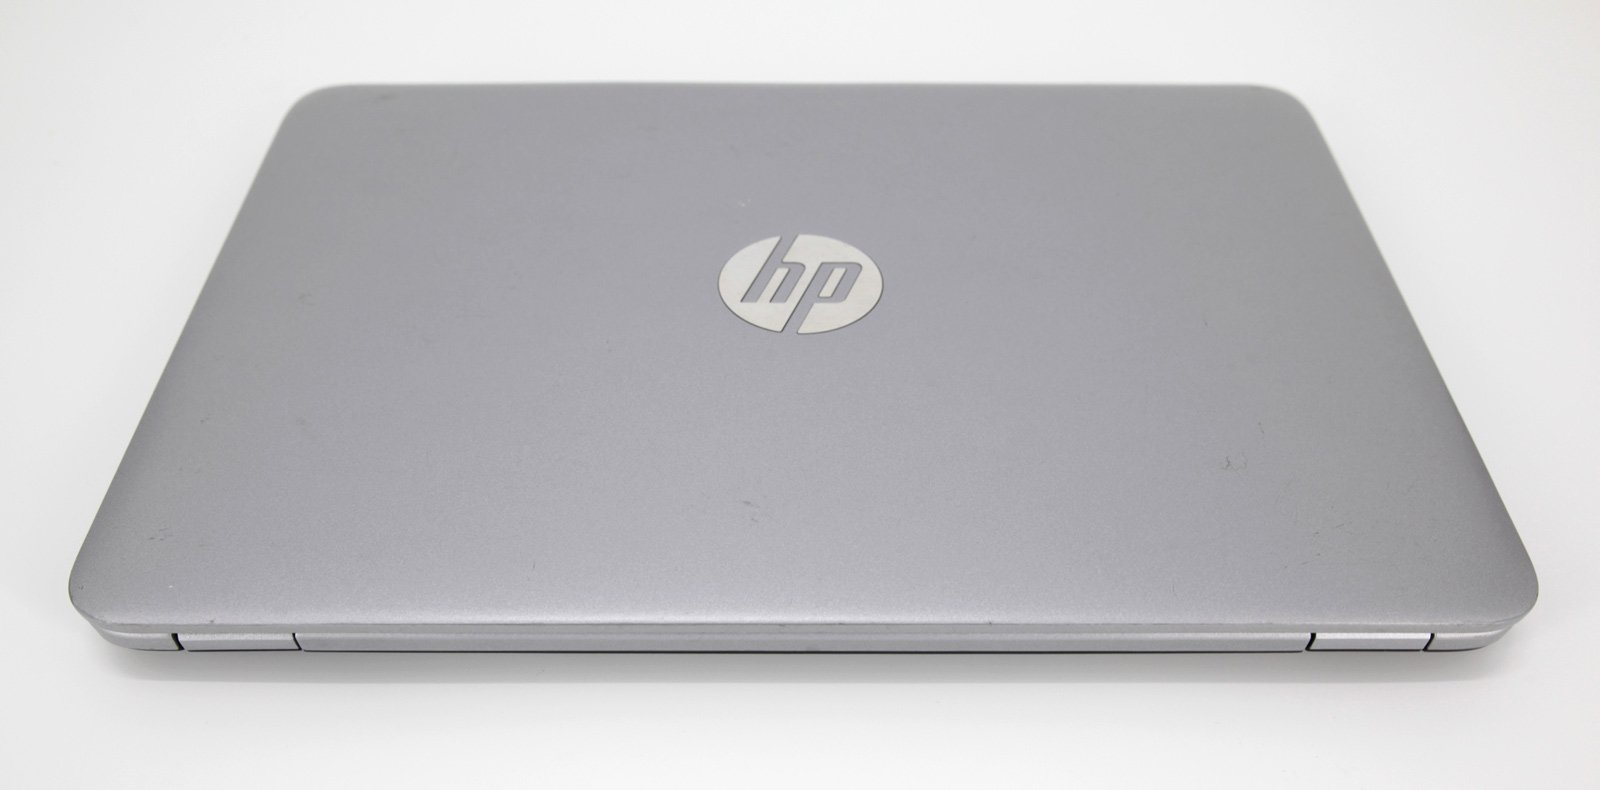 HP EliteBook 820 G3 Laptop: 6th Gen Core i5, 240GB, 8GB Warranty VAT (Grade B) - CruiseTech